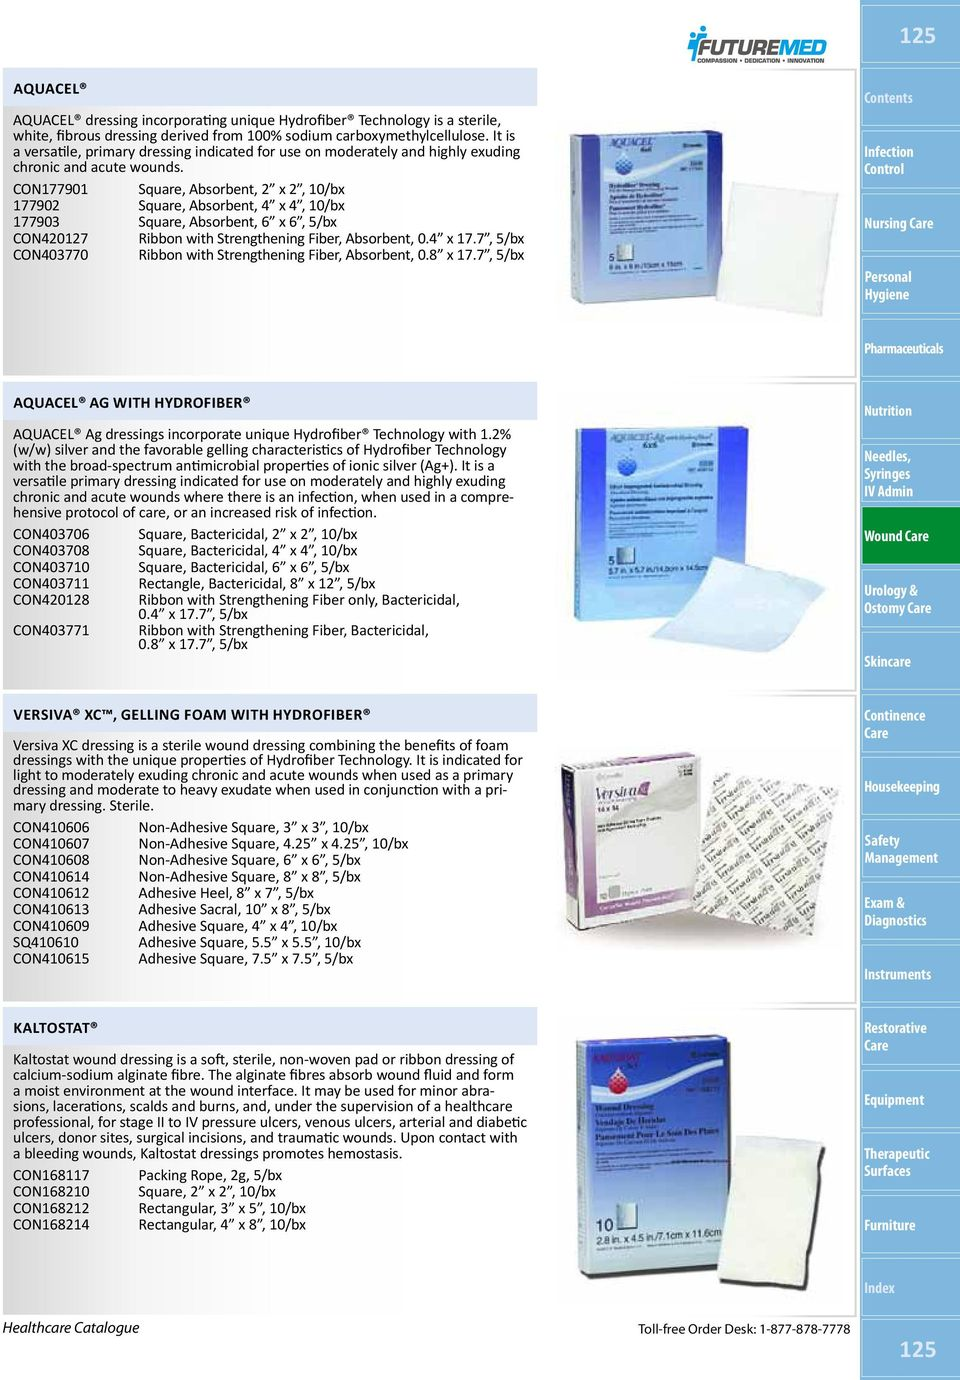 Wound Care Wound Healing Devices Wound Care Products Adhesive